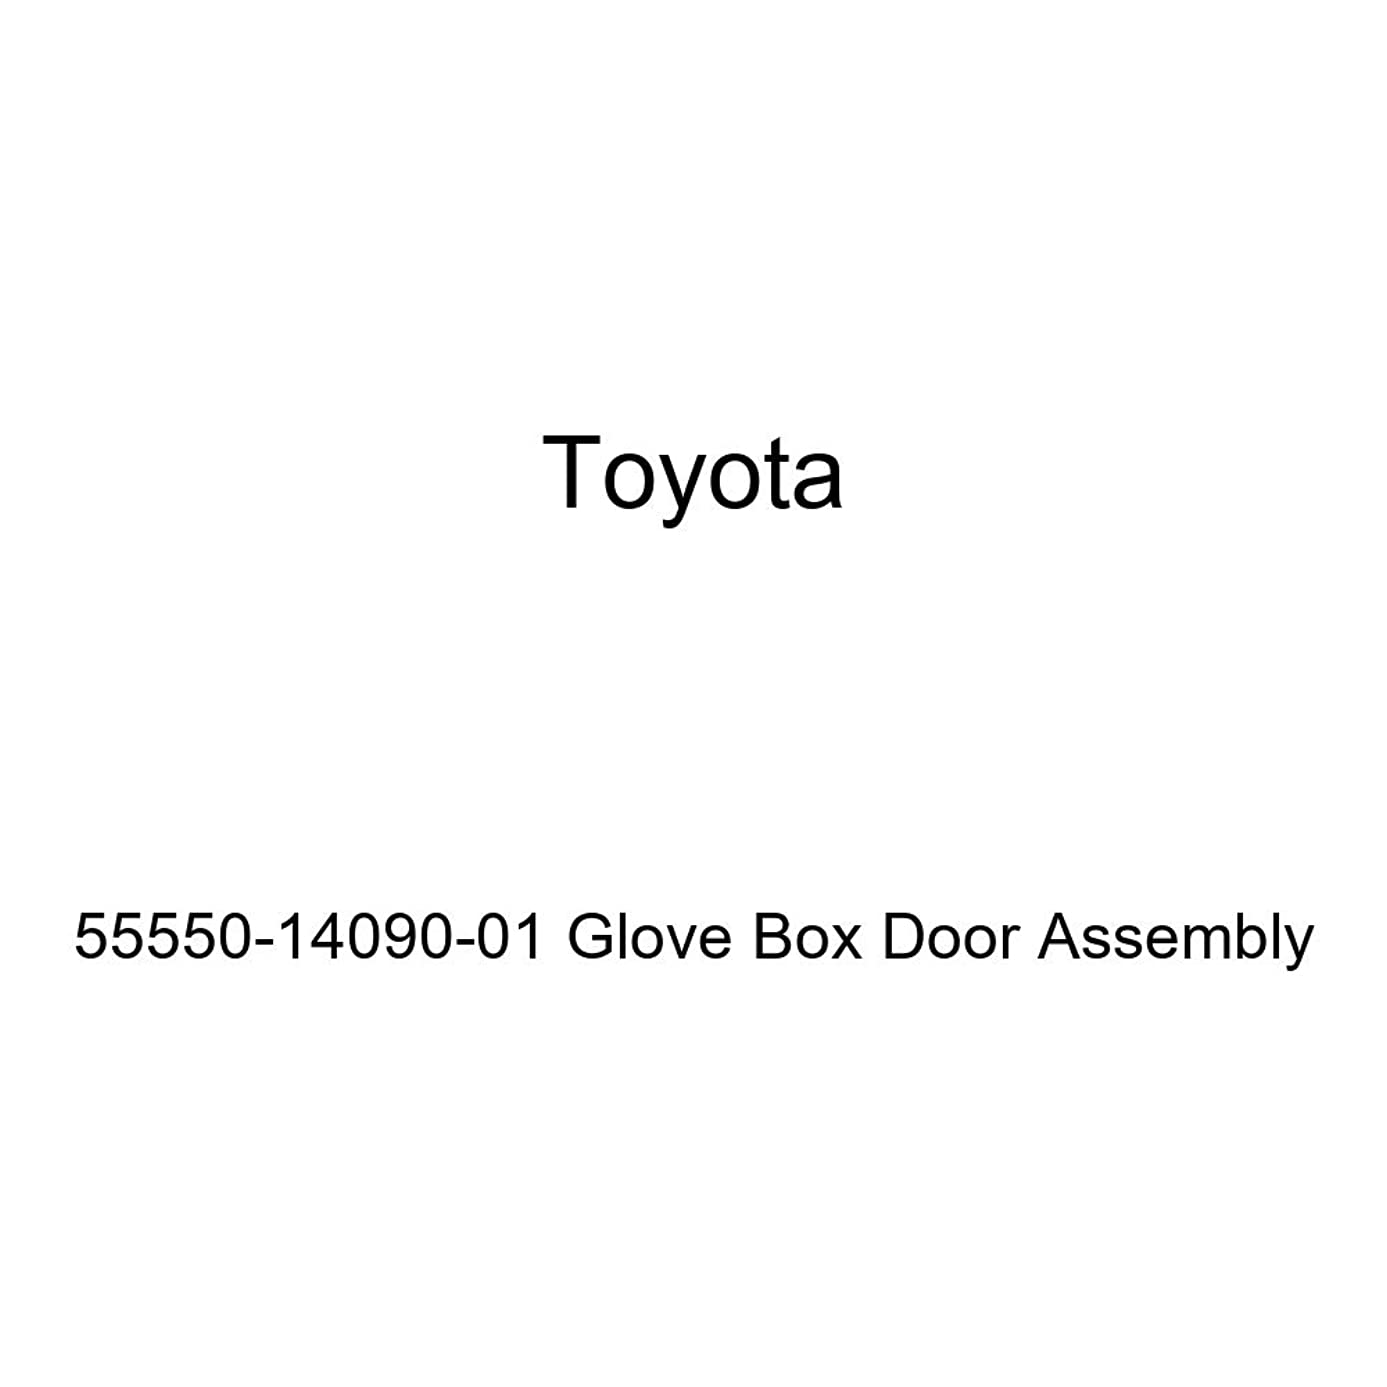 TOYOTA Genuine 55550-14090-01 Glove Box Door Assembly